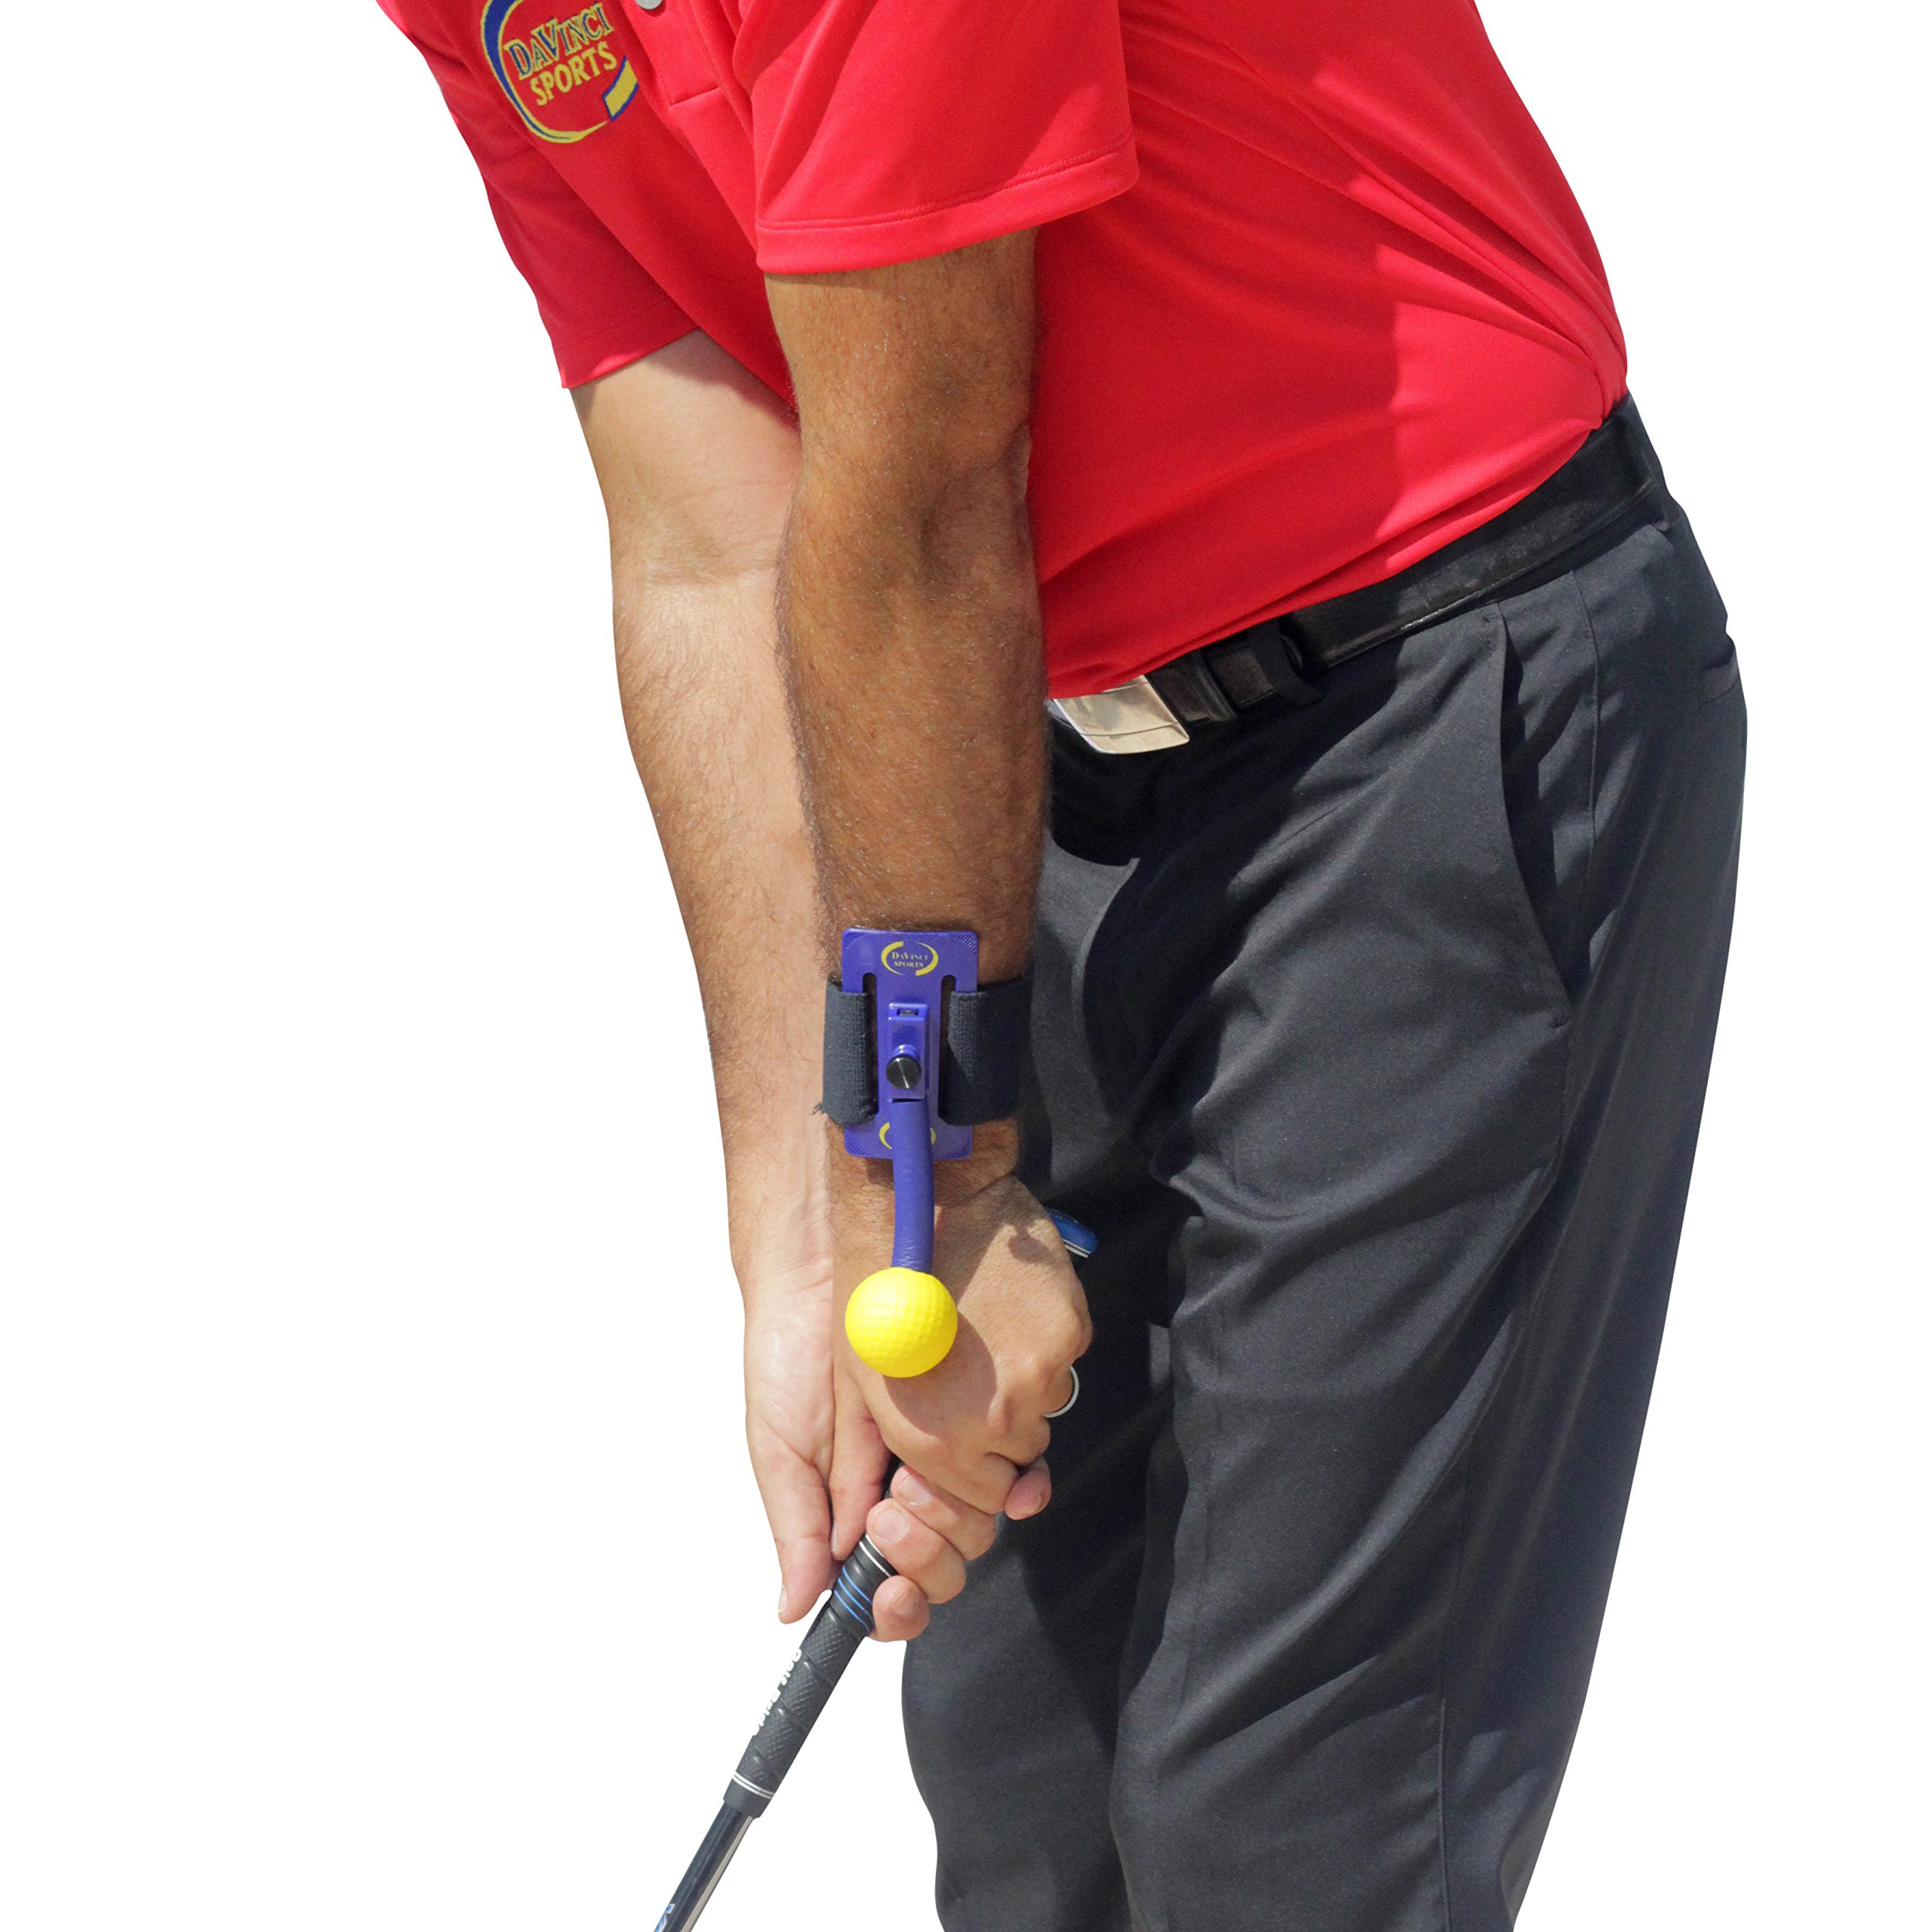 Golf swing wrist cock at impact